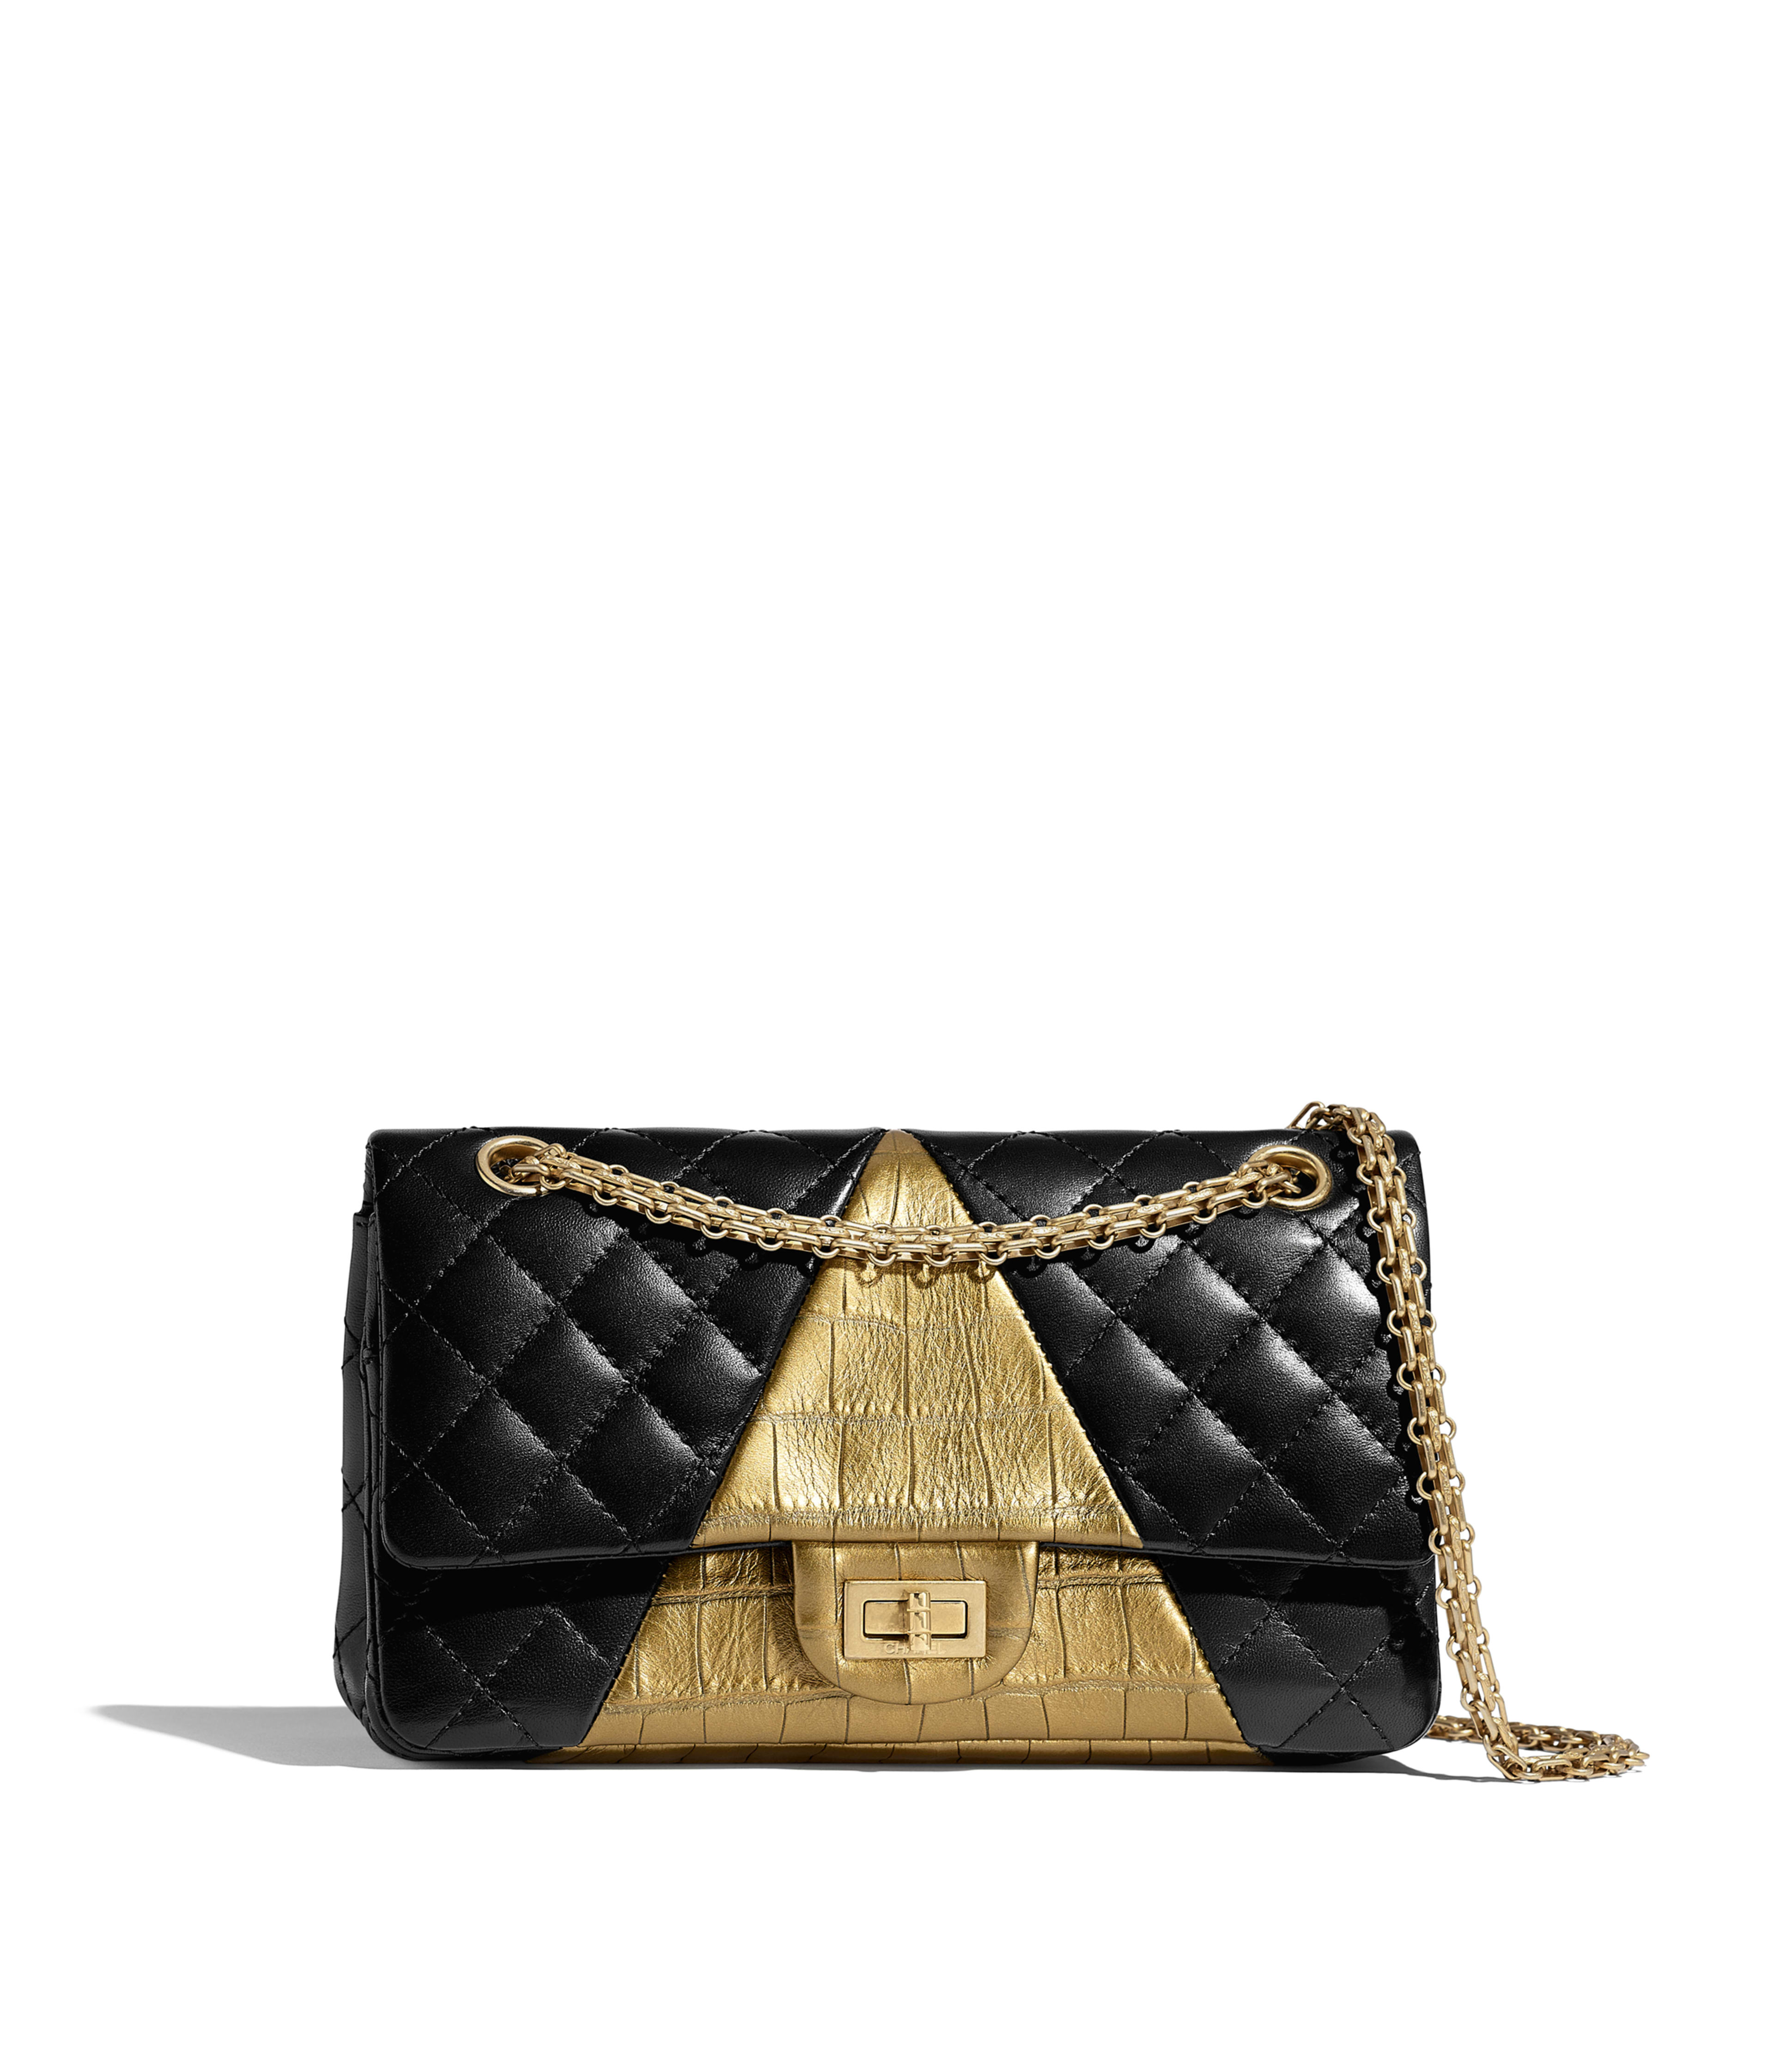 5918f7584870 2.55 Handbag Lambskin, Crocodile Embossed Calfskin & Gold-Tone Metal, Black  & Gold Ref. A37586B01066N0784